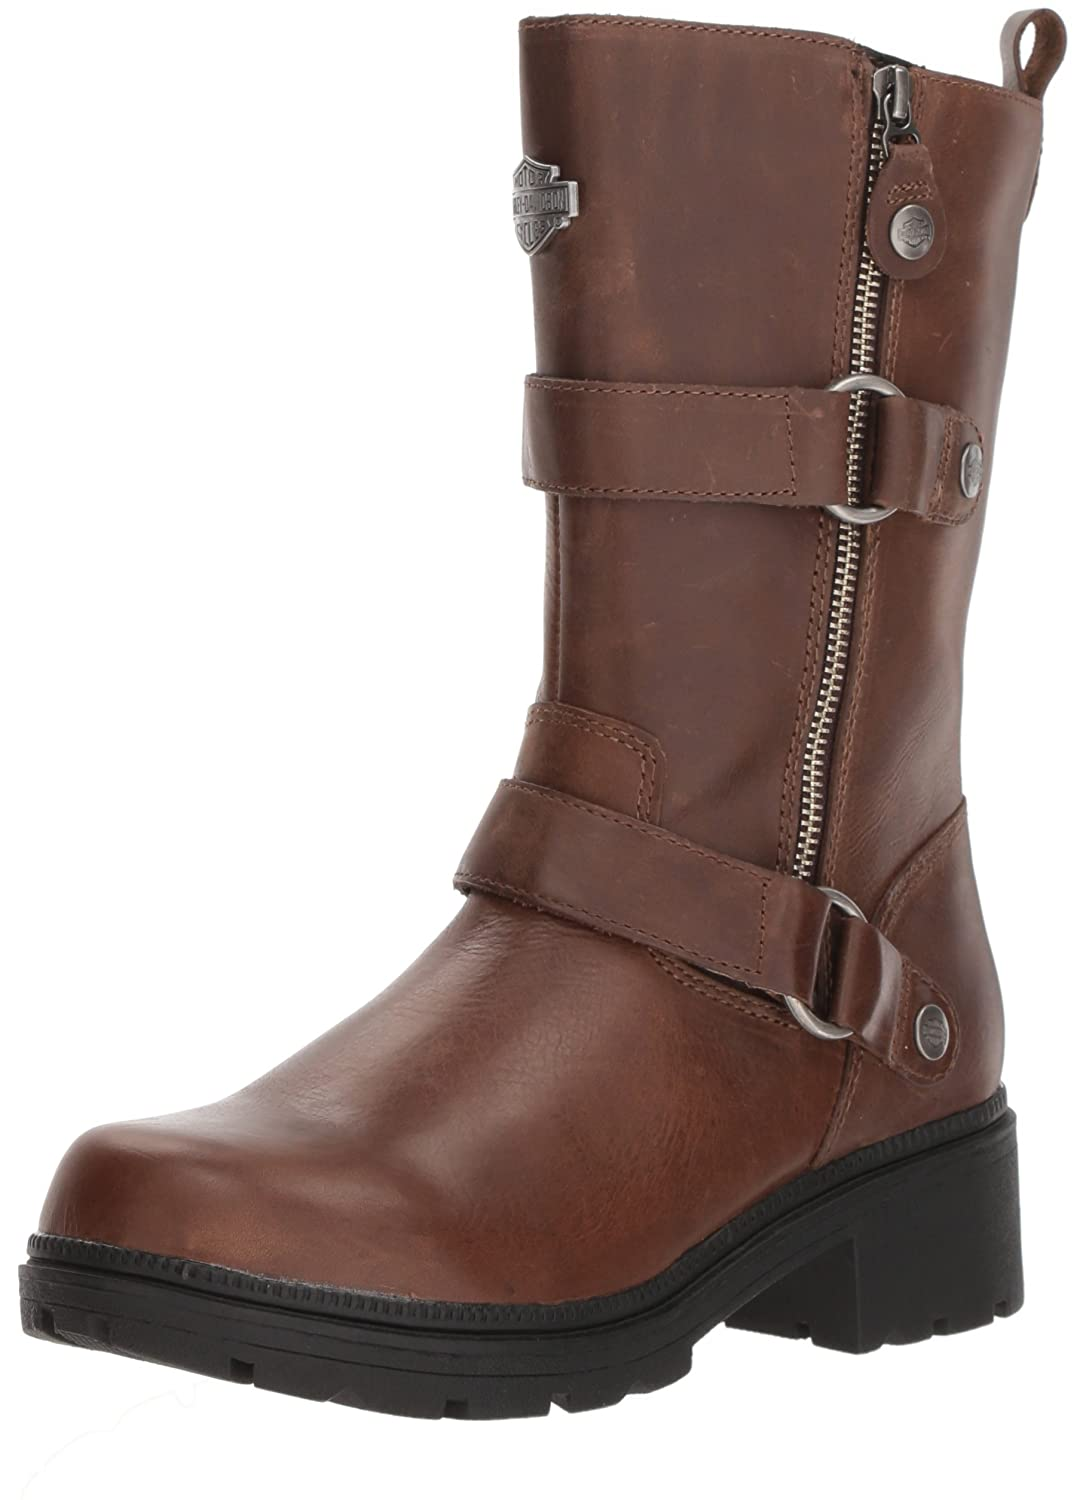 04c064394720 Amazon.com  Harley-Davidson Women s Ardsley Motorcycle Boot  Harley-Davidson   Shoes